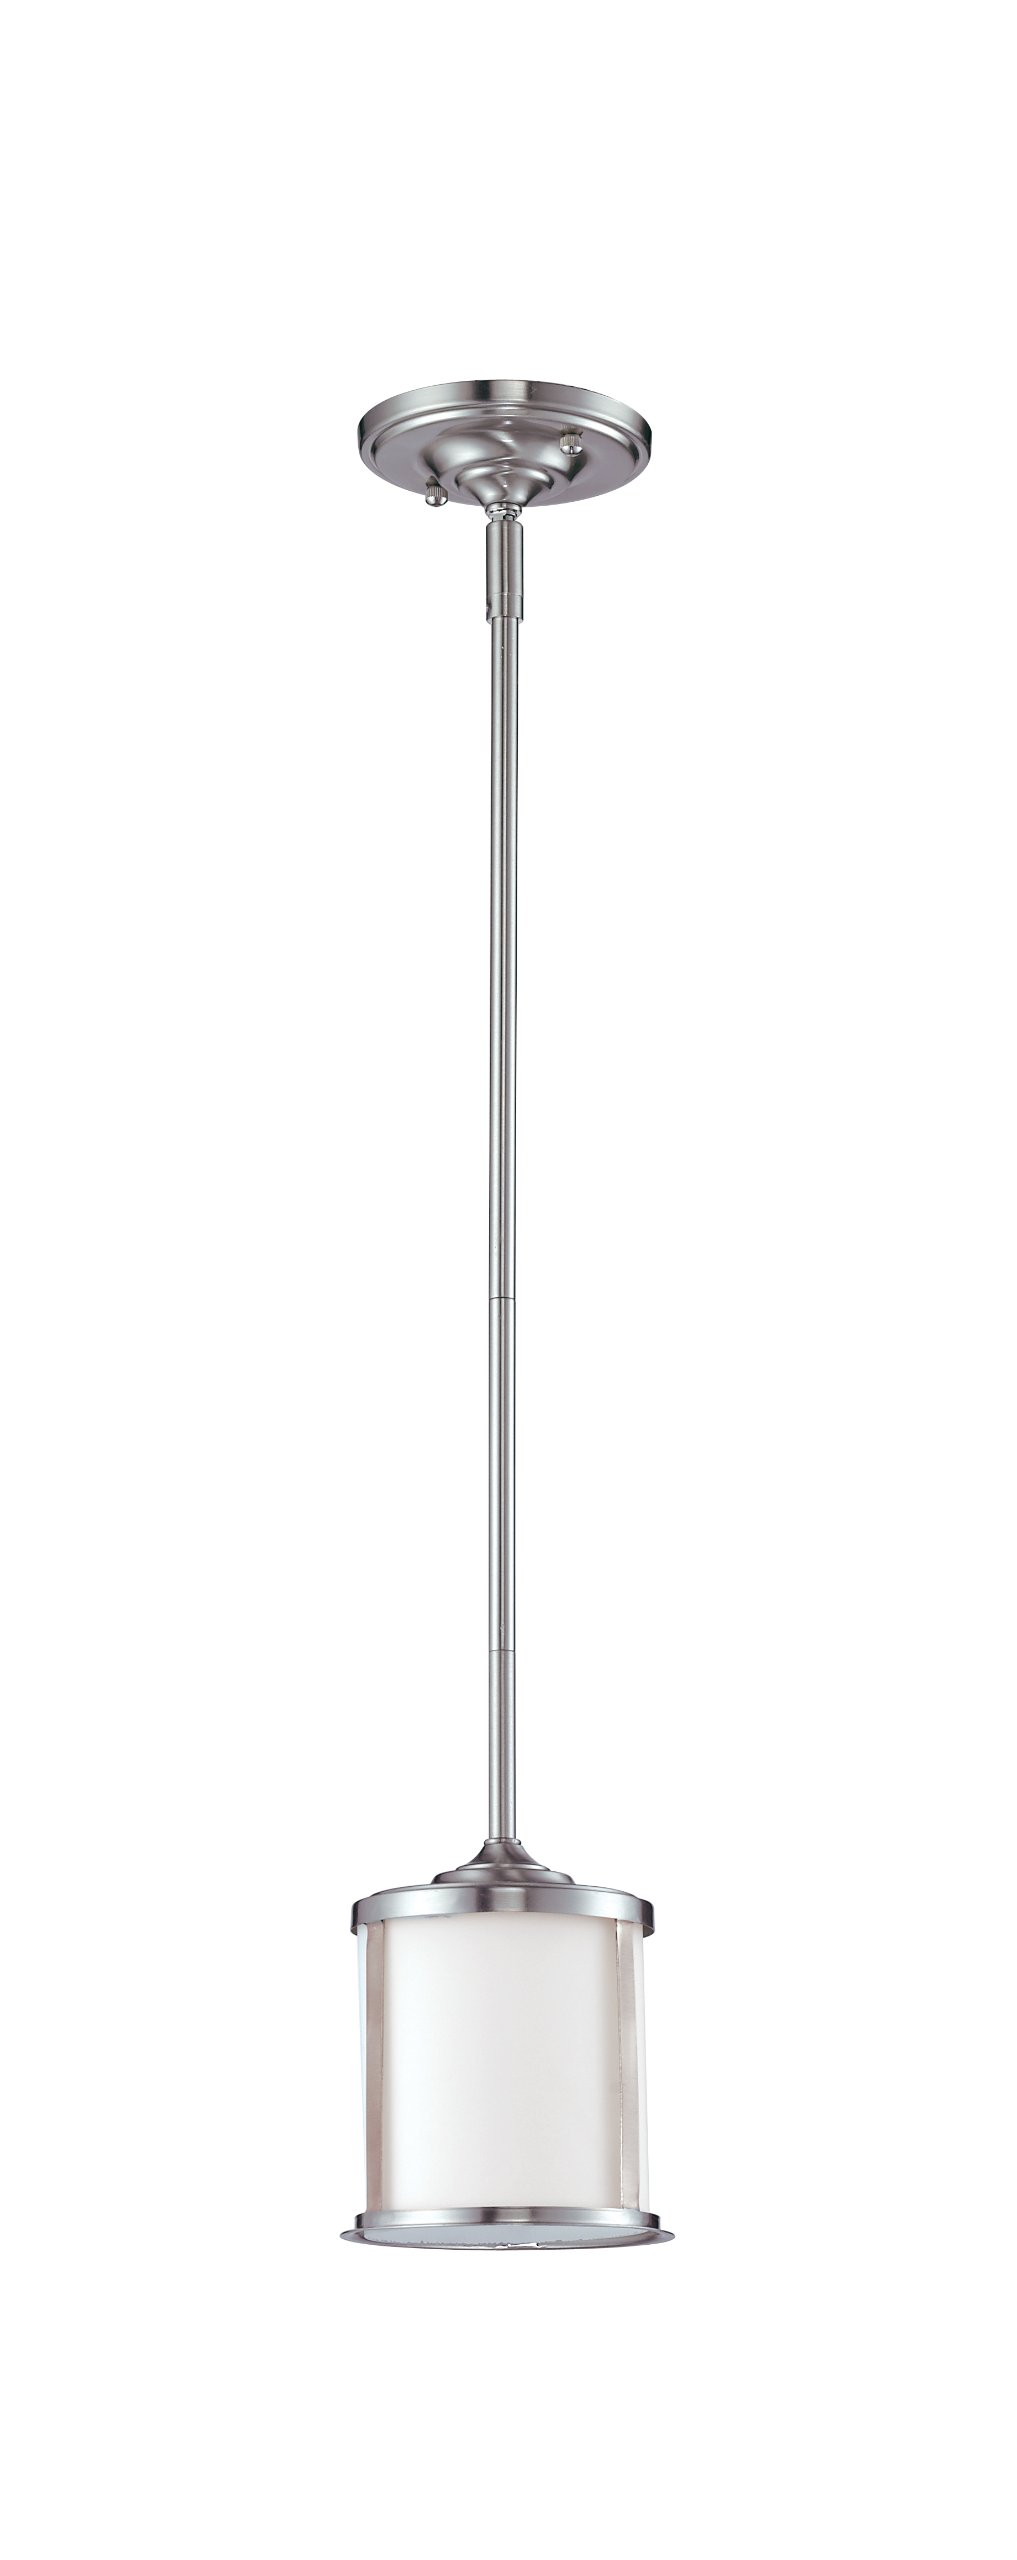 Z-Lite 2002MP-BN Sonna One Light Mini Pendant, Steel Frame, Brushed Nickel Finish and Matte Opal Shade of Glass Material